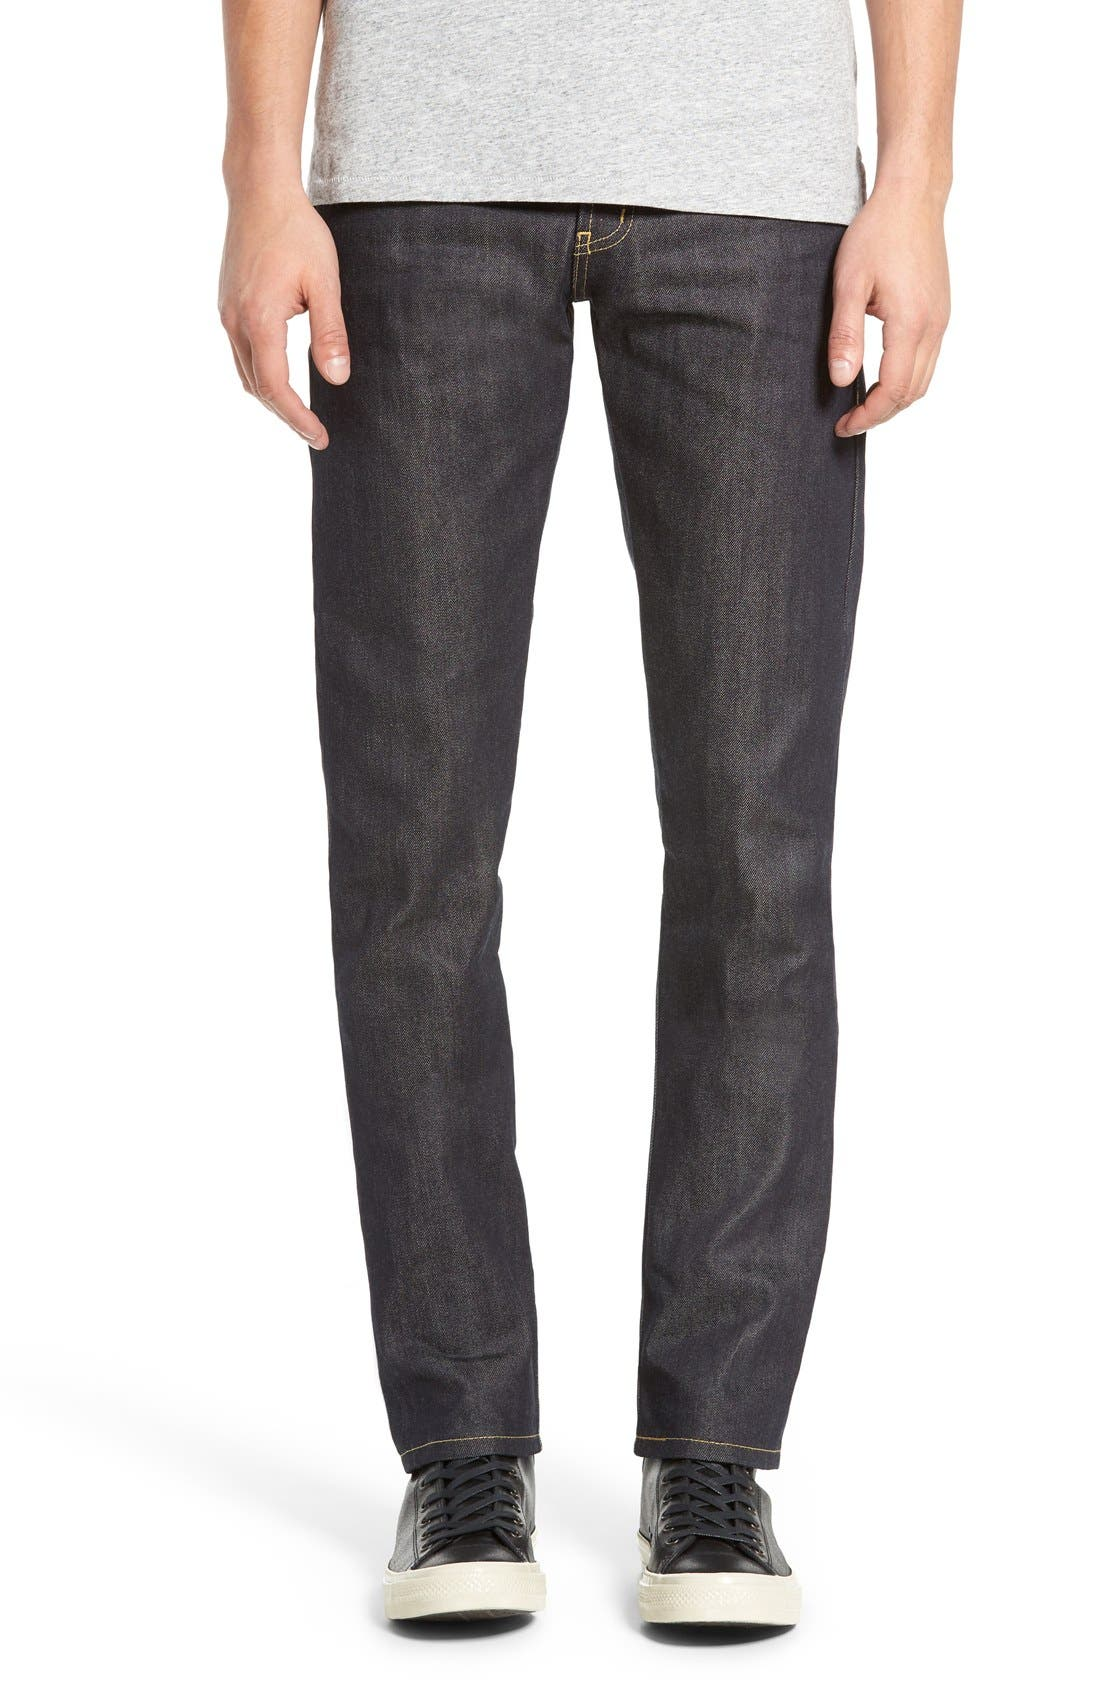 Naked & Famous Denim Super Skinny Guy Raw Skinny Fit Jeans (Kevlar Blend Selvedge)